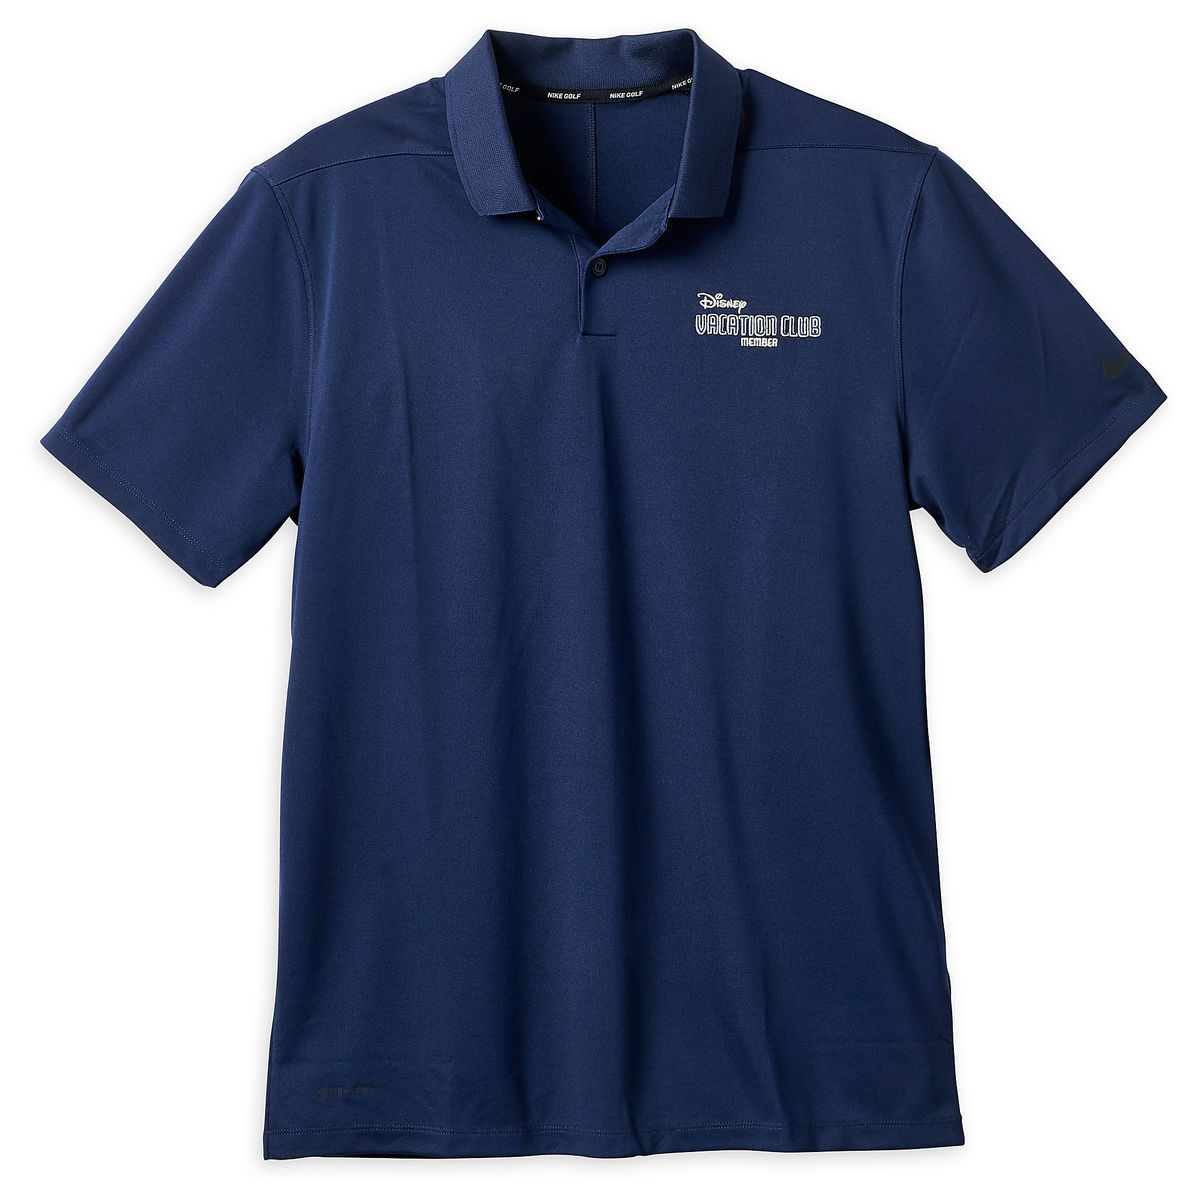 Product Image of Disney Vacation Club Polo Shirt for Men by Nike Golf - Navy    8717bc125